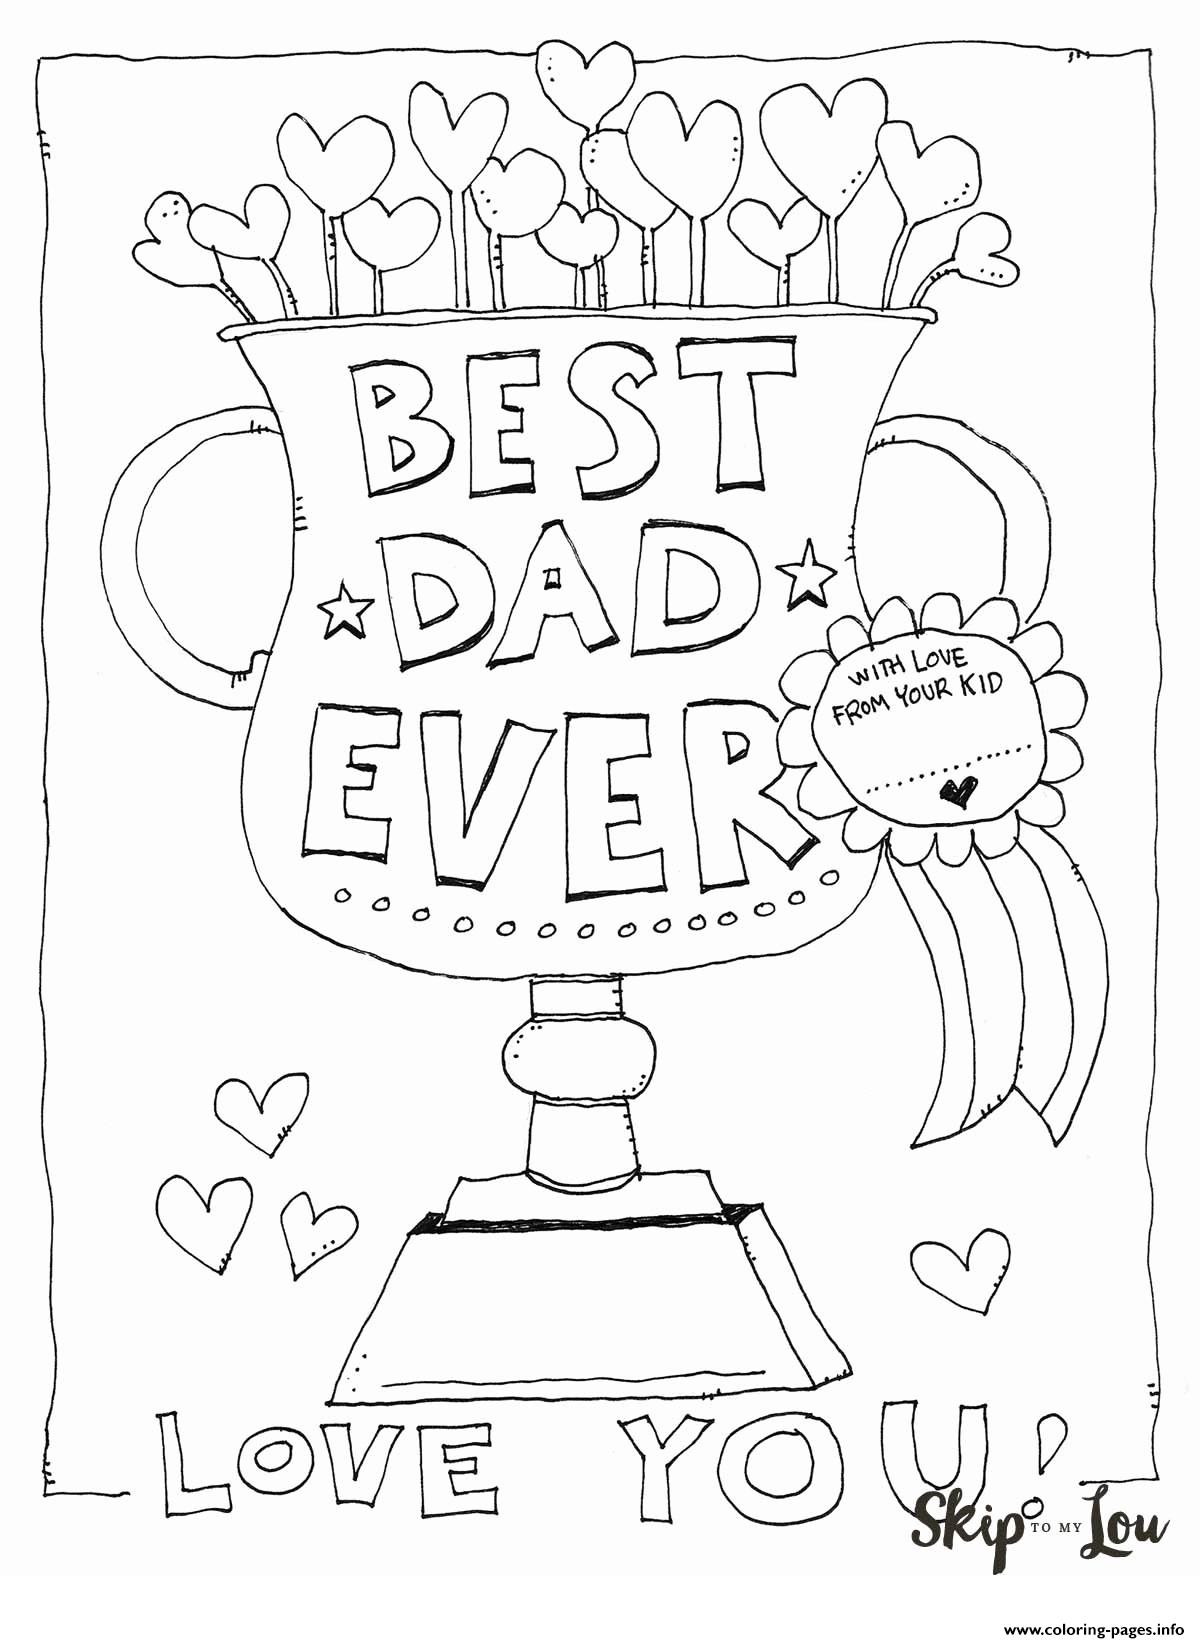 Best Dad Ever Love You Fathers Day coloring pages